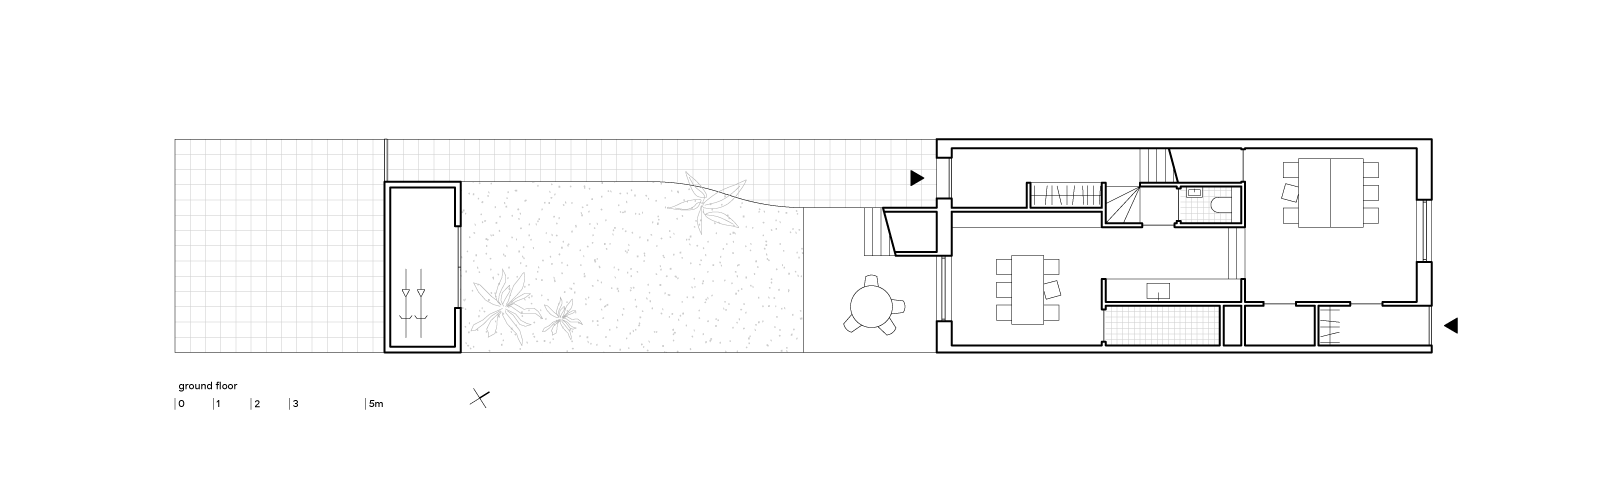 blue house by BETA ground floor plan